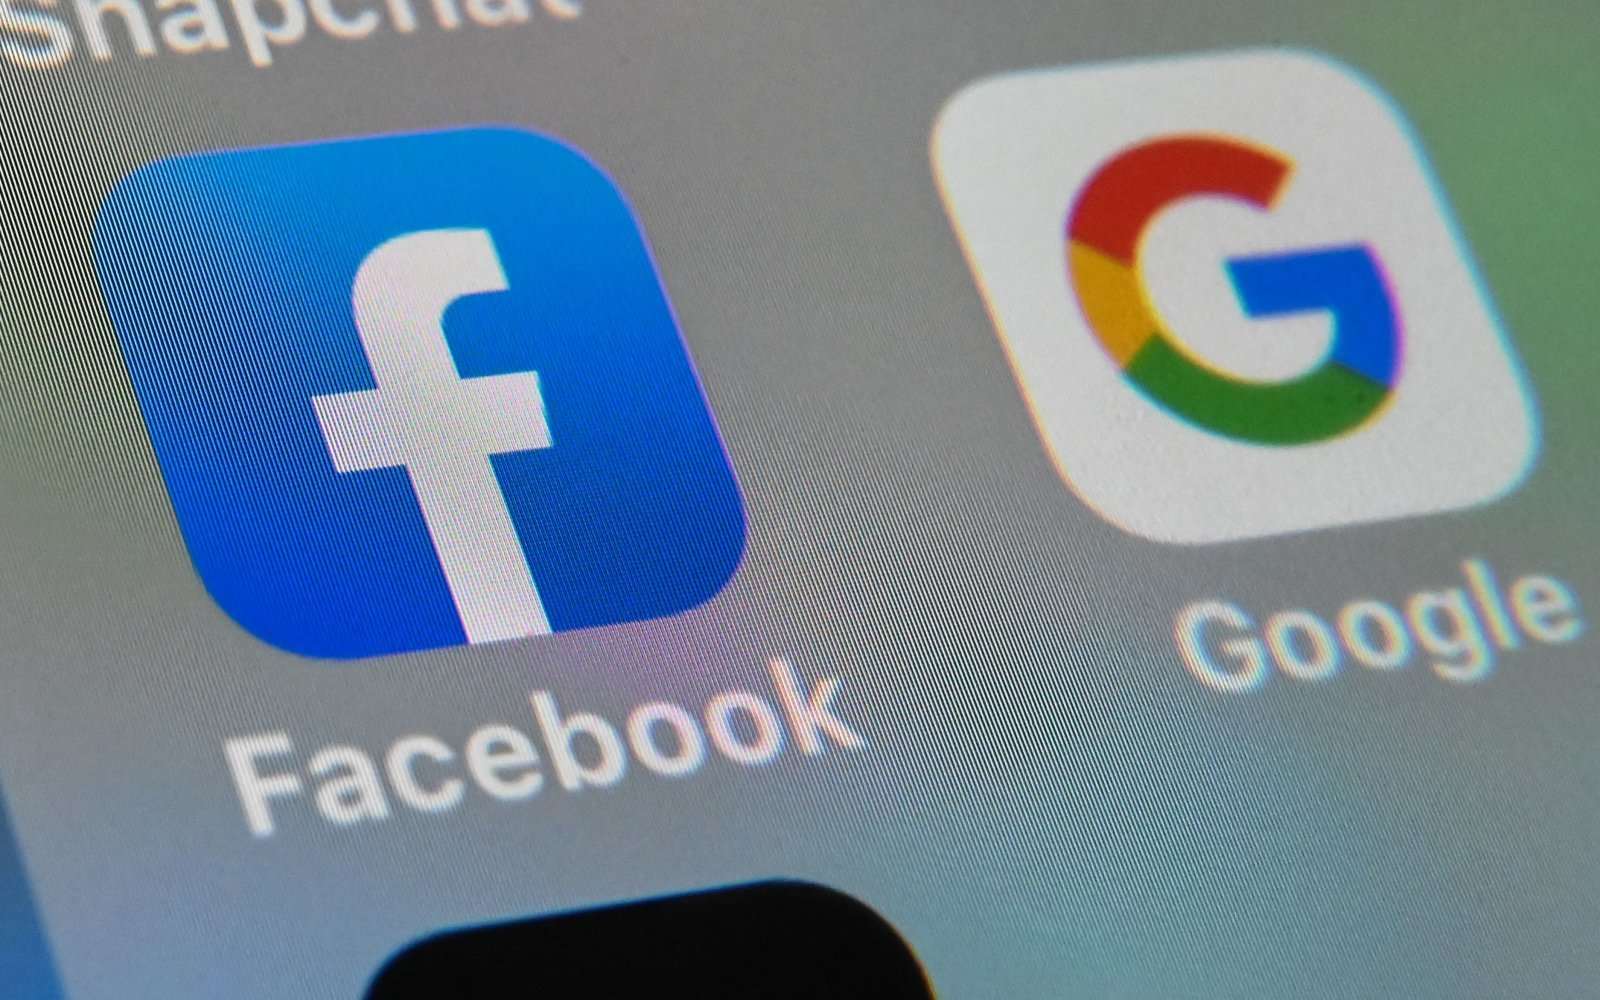 How to Transfer Photos From Facebook to Google Photos using this new tool